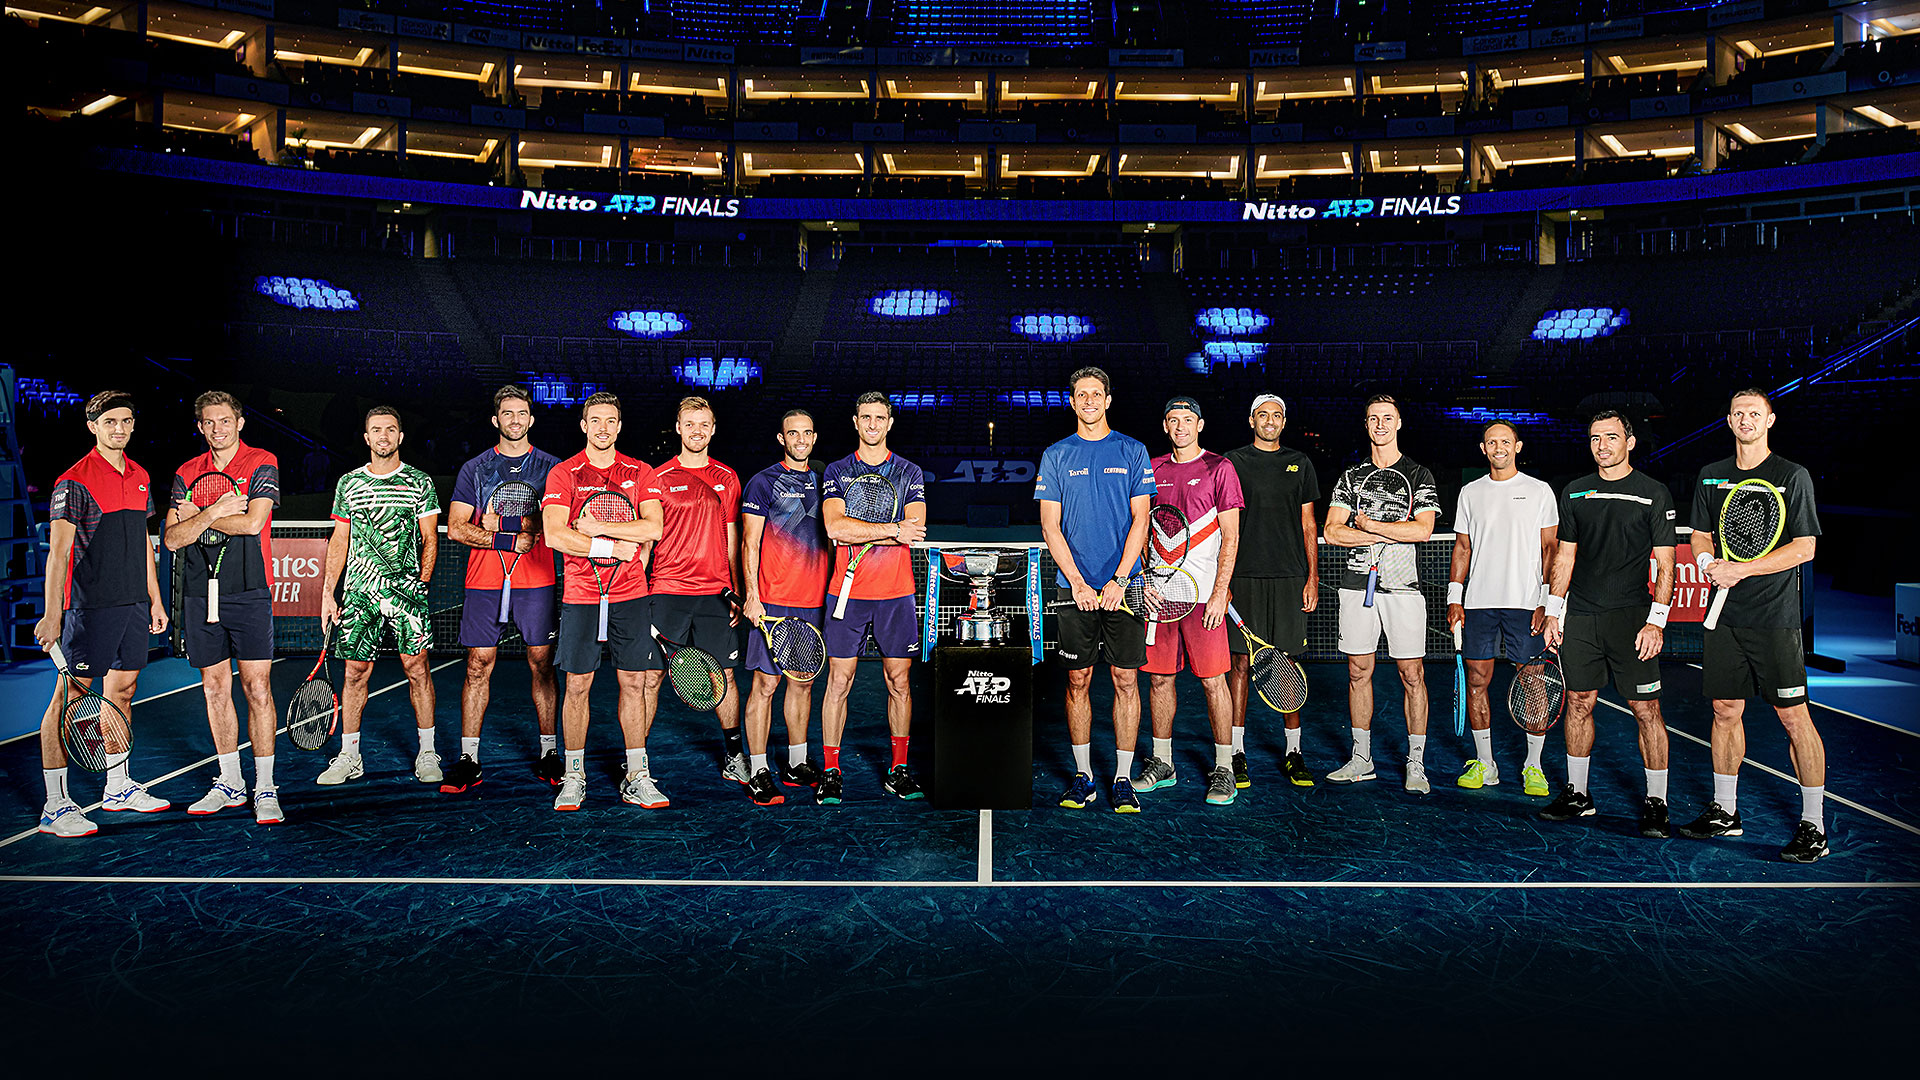 Nitto ATP Finals 2019 doubles group photo